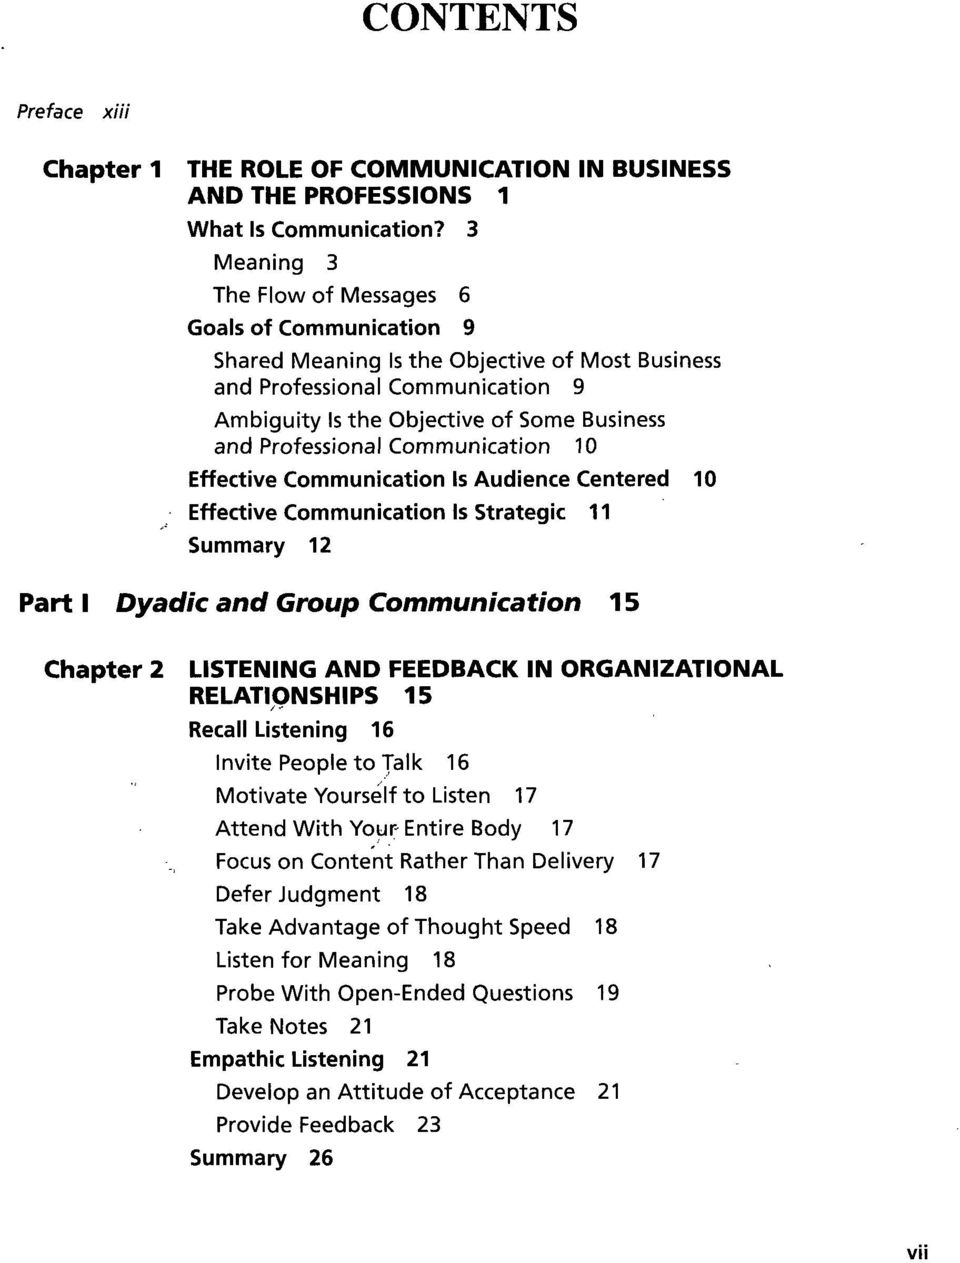 Professional Communication 10 Effective Communication Is Audience Centered 10 Effective Communication Is Strategic 11 Summary 12 Part I Dyadic and Croup Communication 15 Chapter 2 LISTENING AND